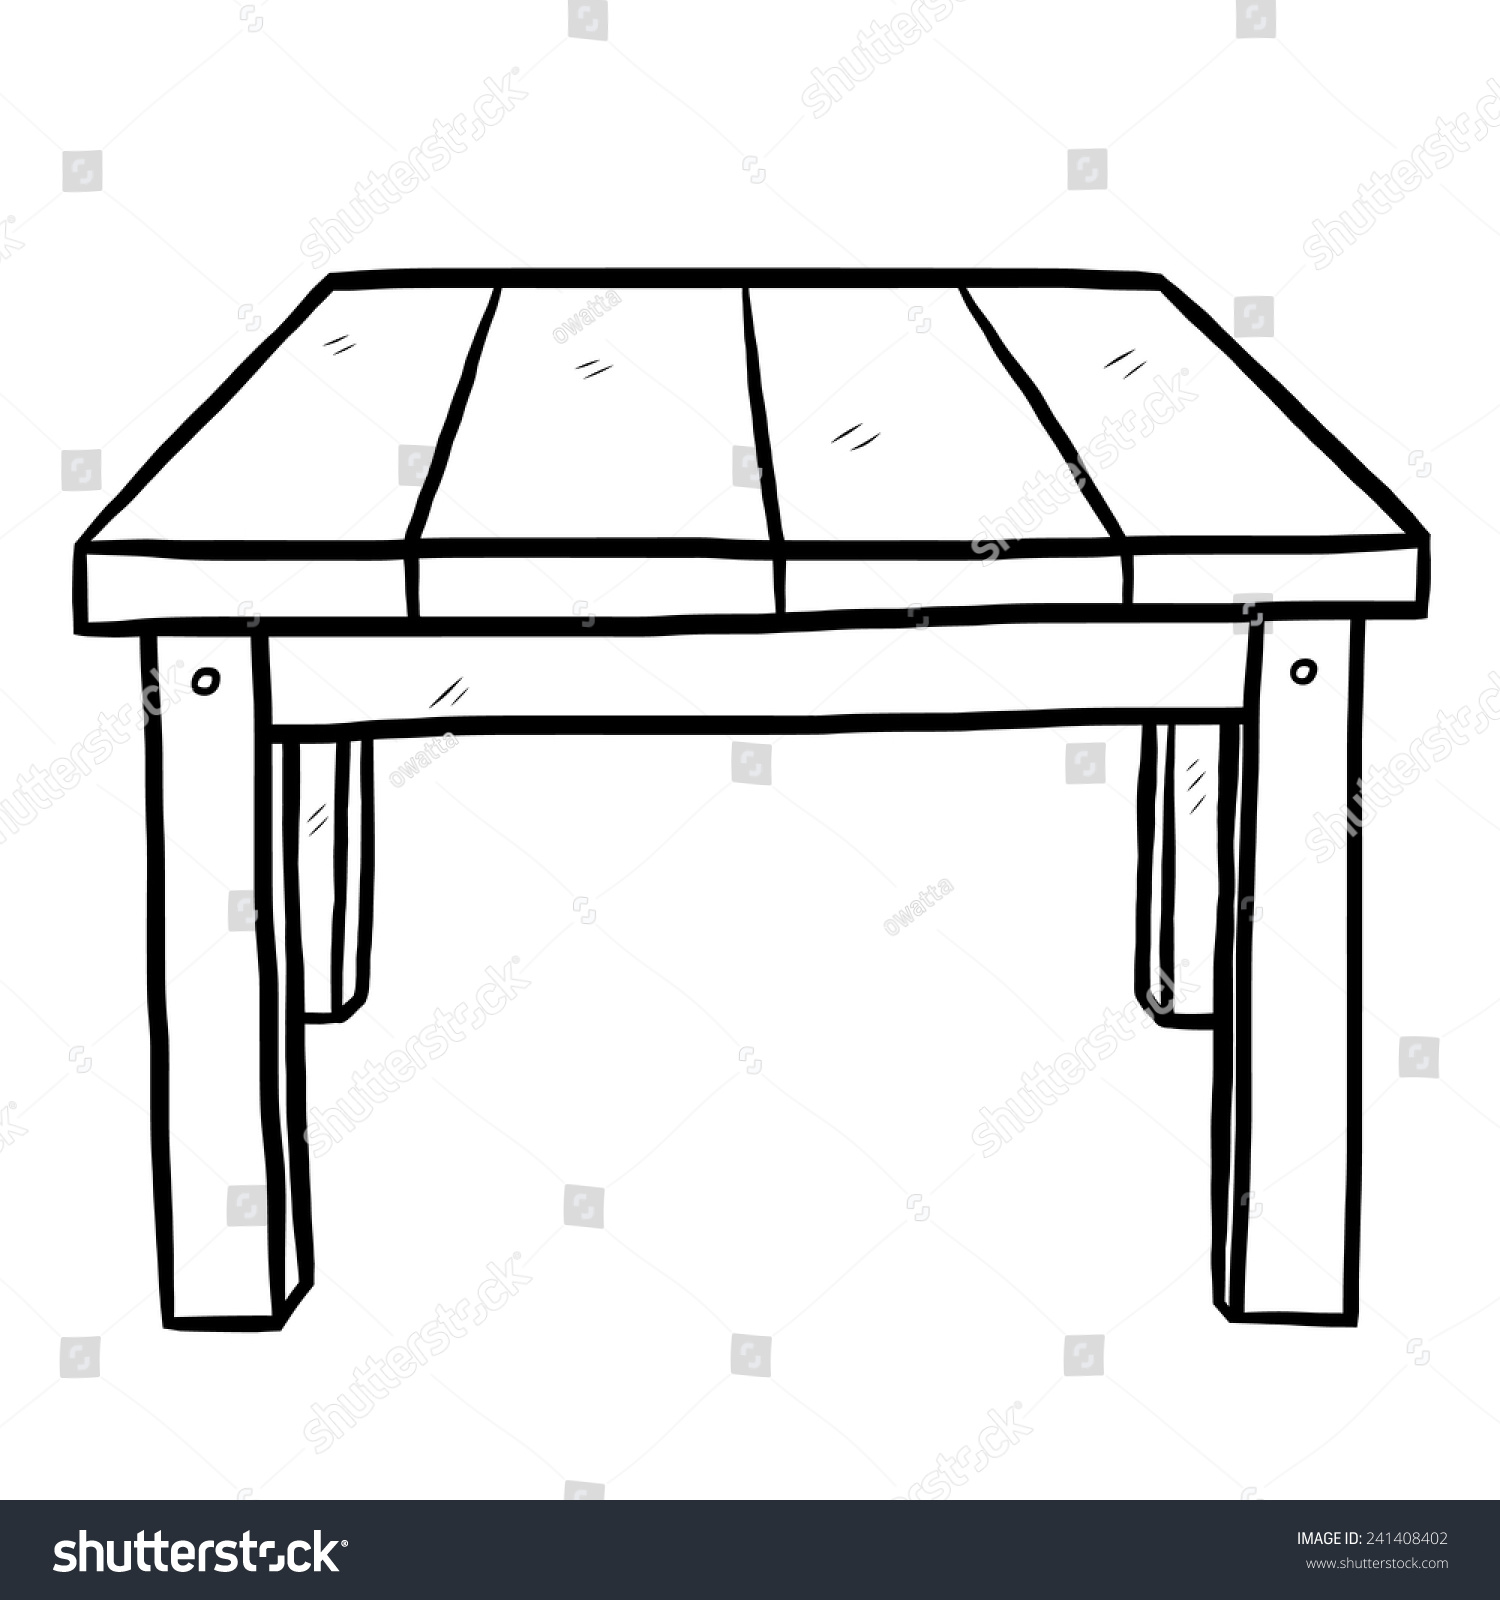 round table clipart black and white. table clipart black and white round . e